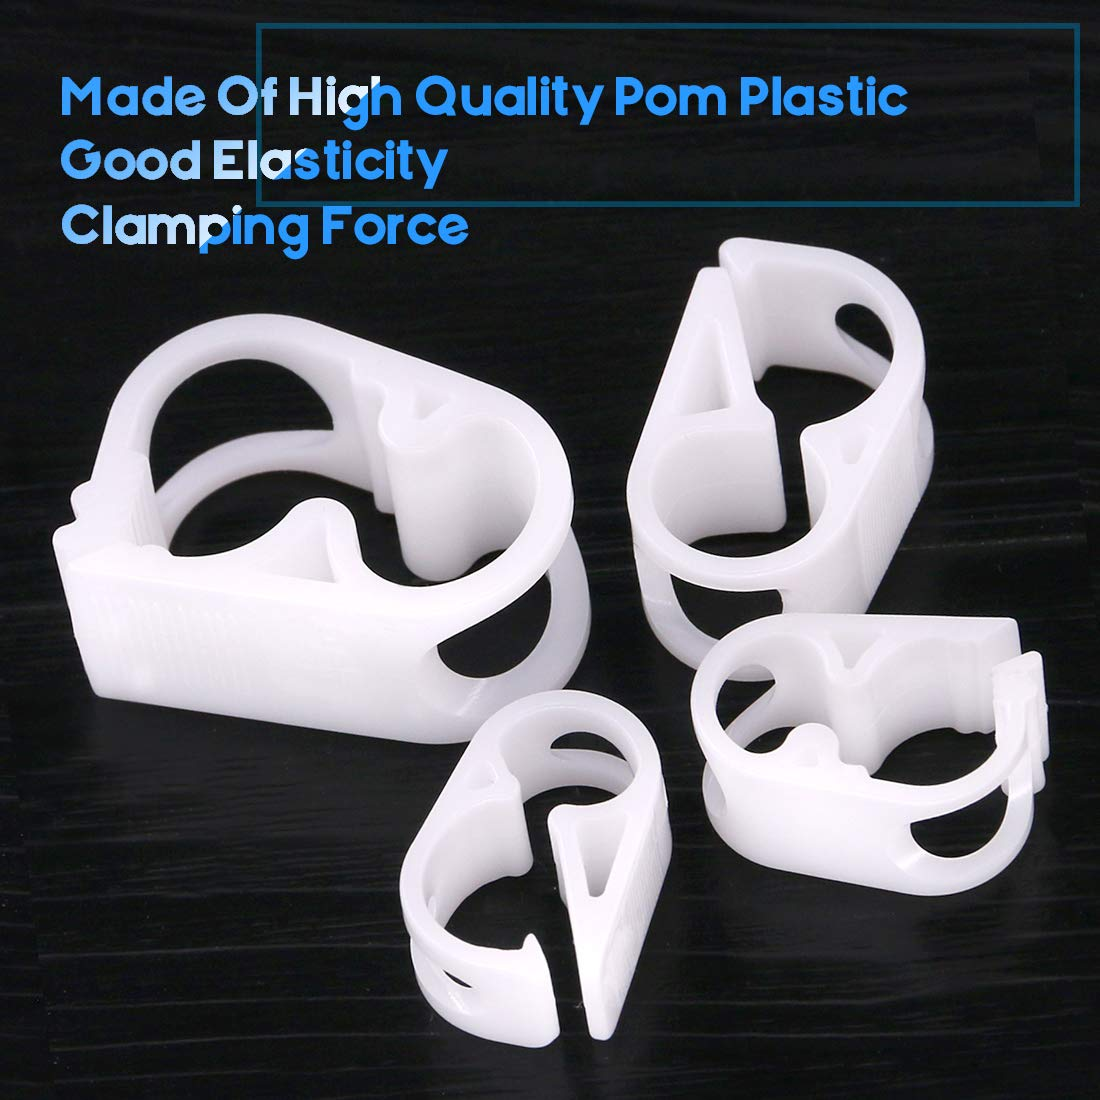 Glarks 40-Pieces 4 Szie Shut Off Plastic Tubing Hose Clamps Single Position and Adjustable Open to Complete Closure Clamps for Tubing 1//8-1//2